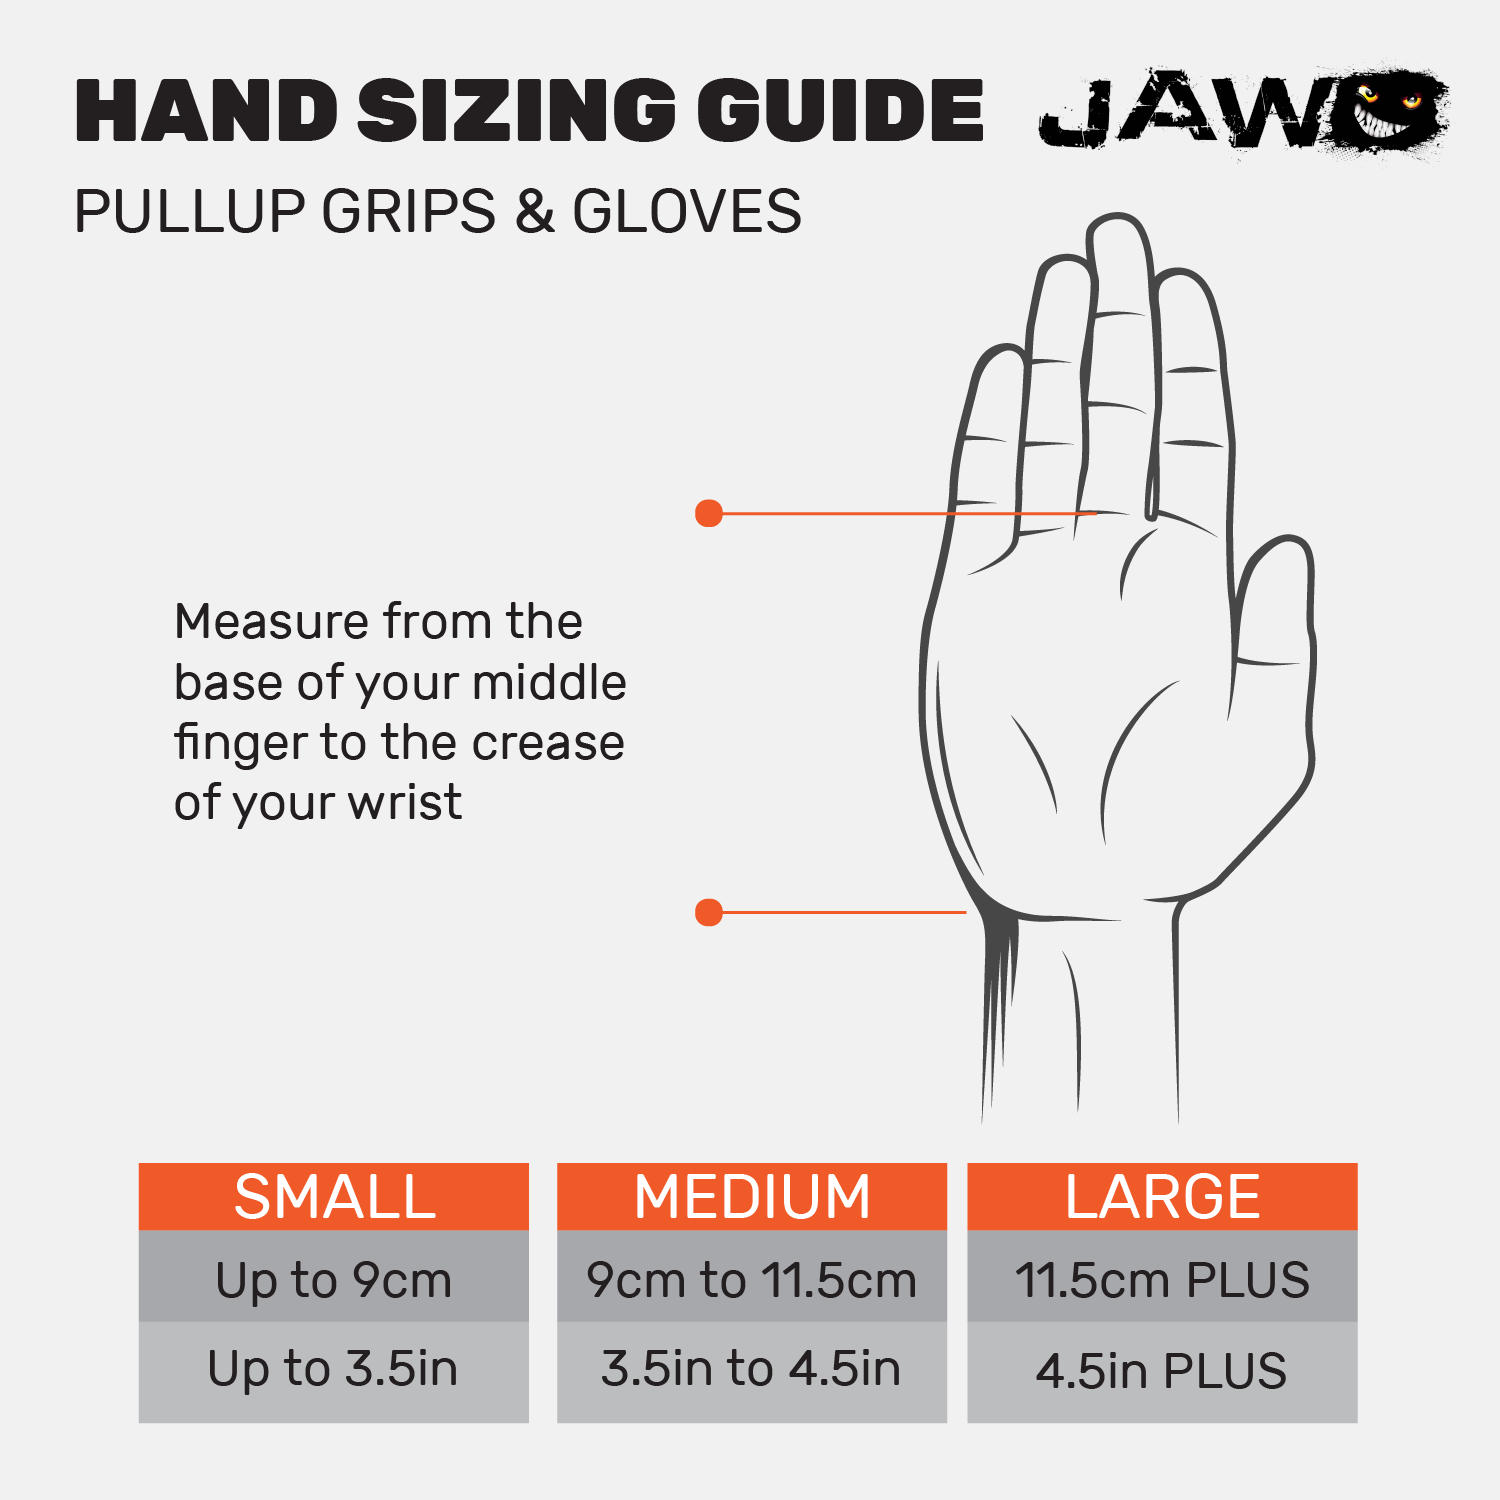 jaw-pullup-grip-glove-sizing-guide.png